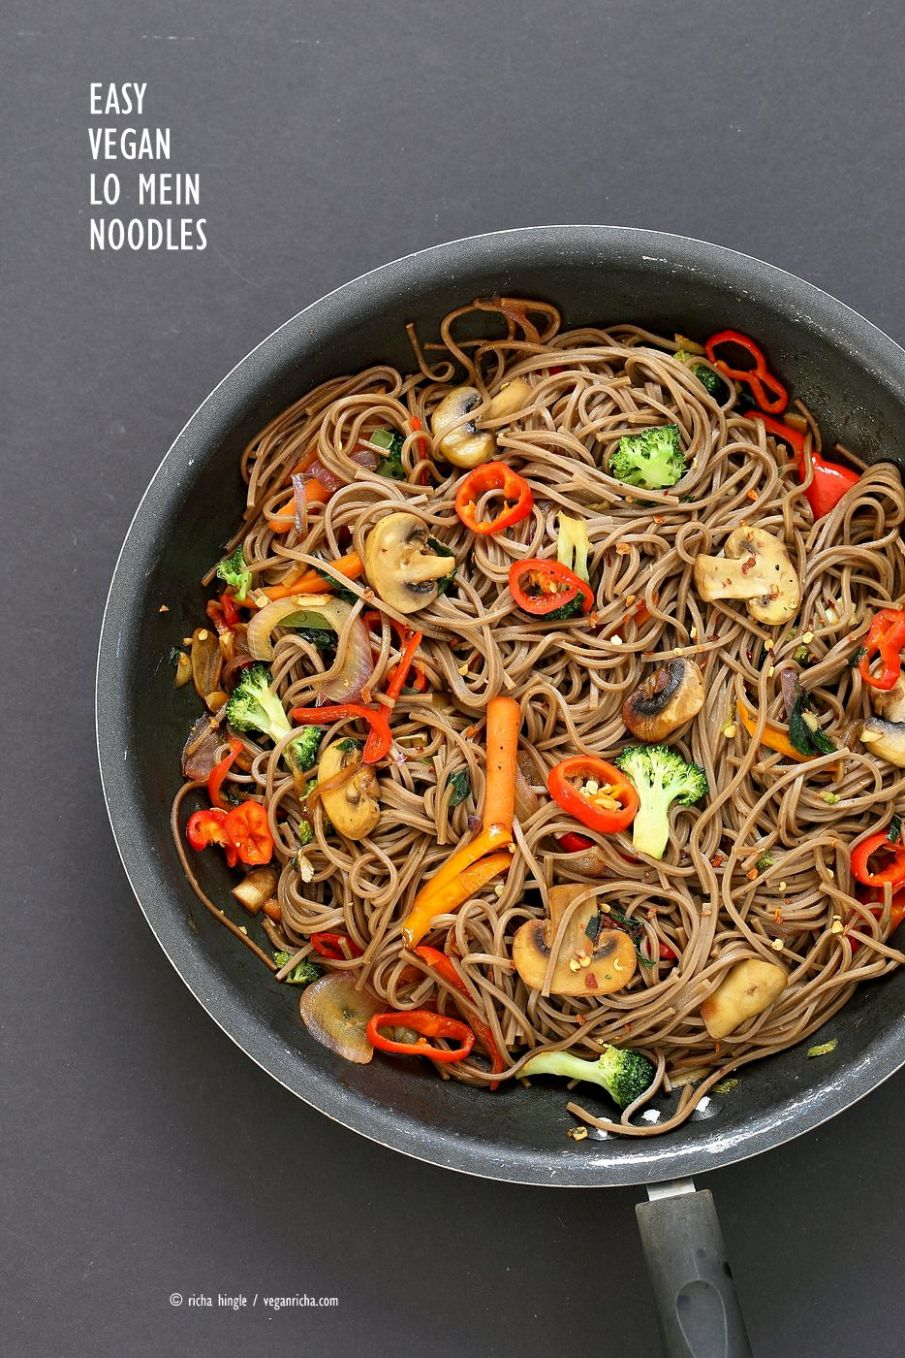 Vegan Vegetable Lo Mein with Soba Noodles - Recipes Vegetable Lo Mein